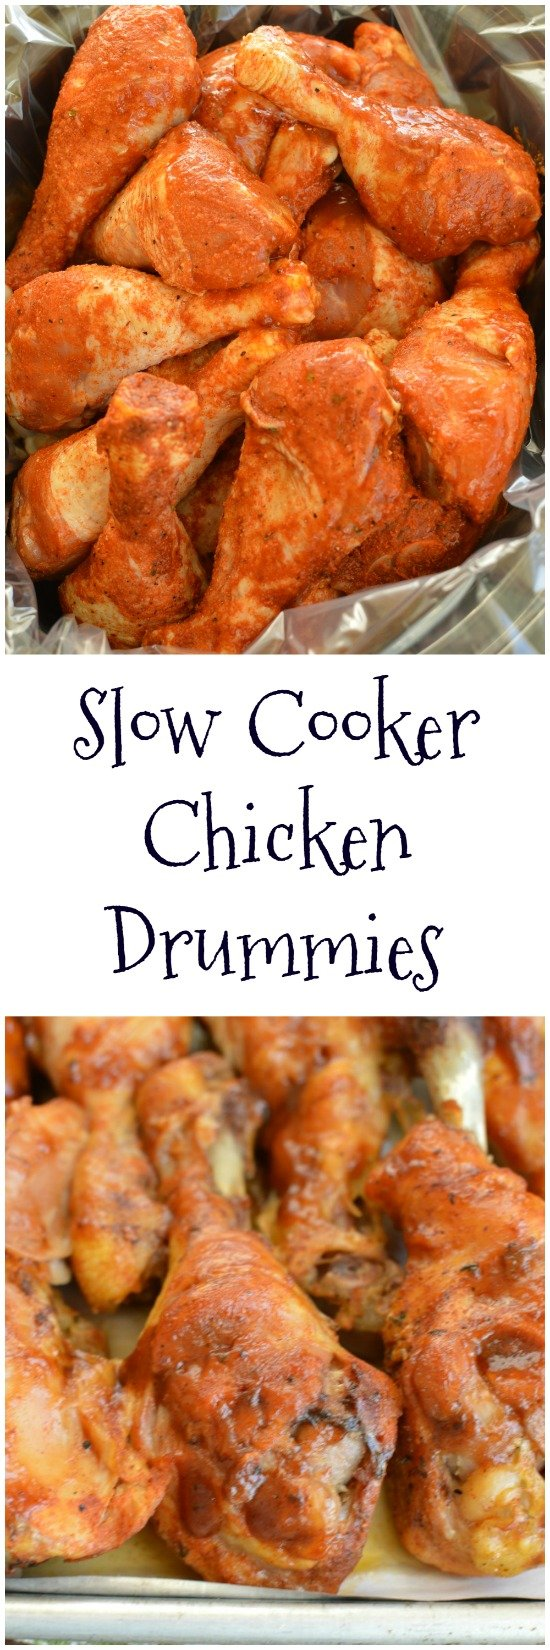 Grab a napkin! Slow Cooker Drummies are fall off the bone tender and explode with flavor! It's nice that they are easy and inexpensive too! Little Dairy on the Prairie